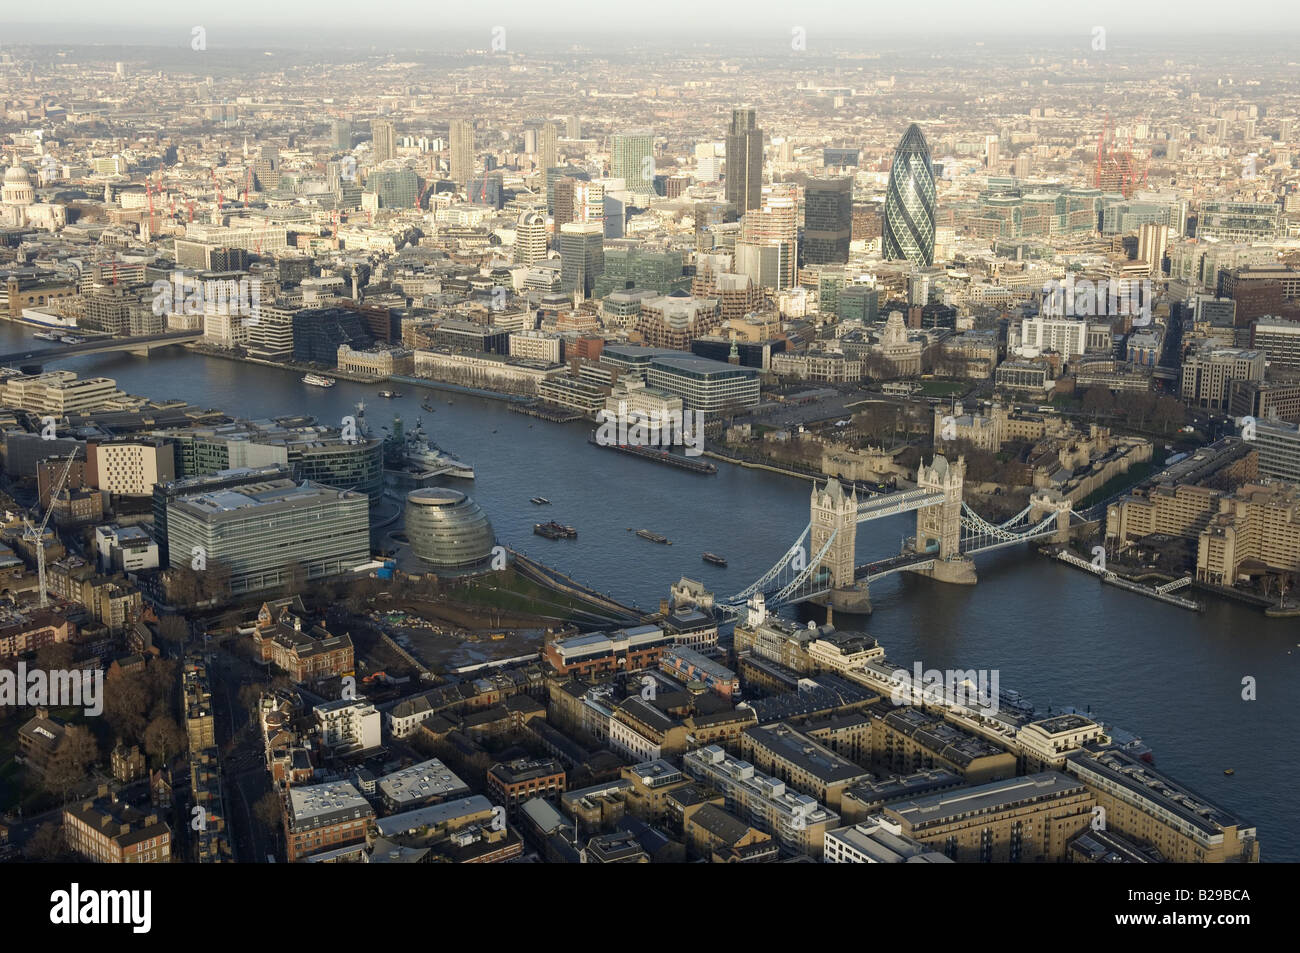 The City of London Date 12 03 2008 Ref ZB648 111149 0052 COMPULSORY CREDIT World Pictures Photoshot - Stock Image